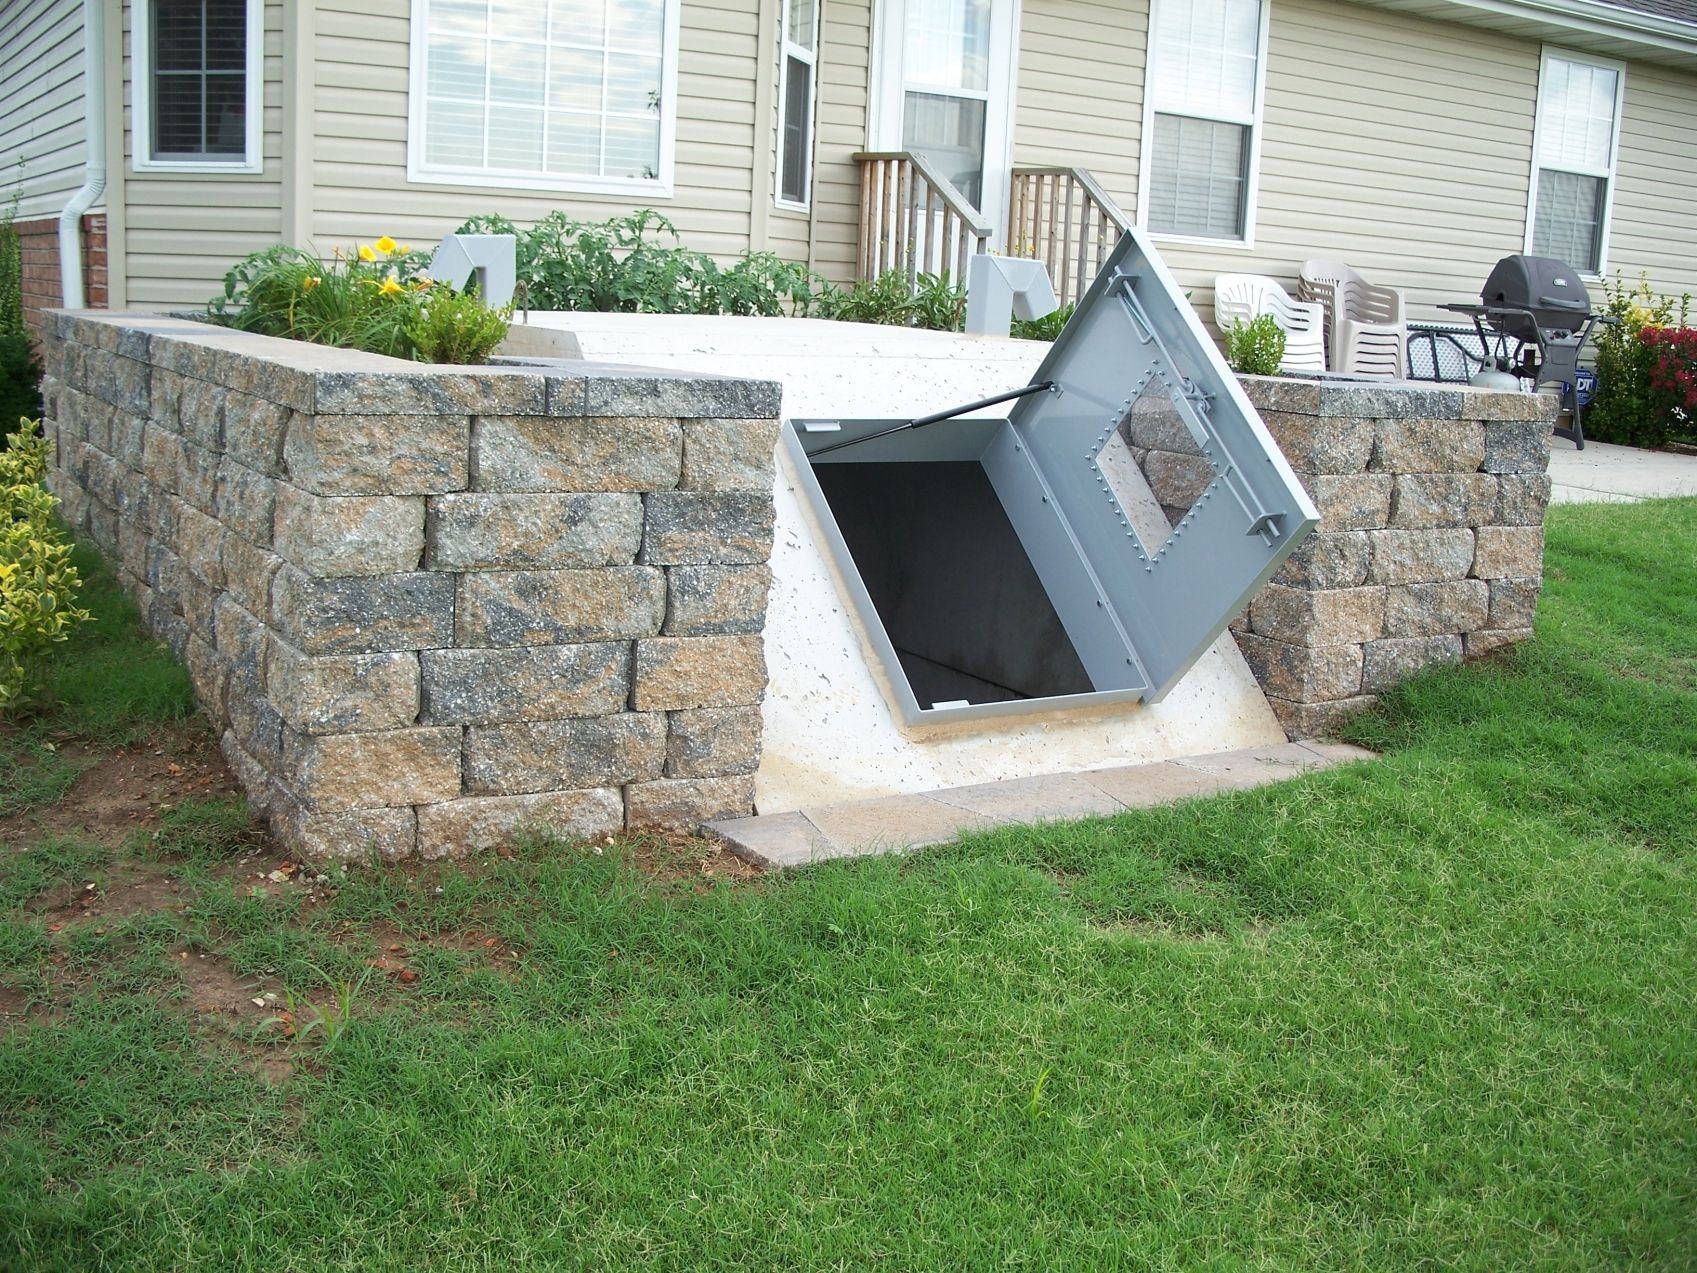 Best Kitchen Gallery: Underground Vaults For Sale These Storm Shelters Can Be Set Into of Shipping Container Storm Shelter on rachelxblog.com